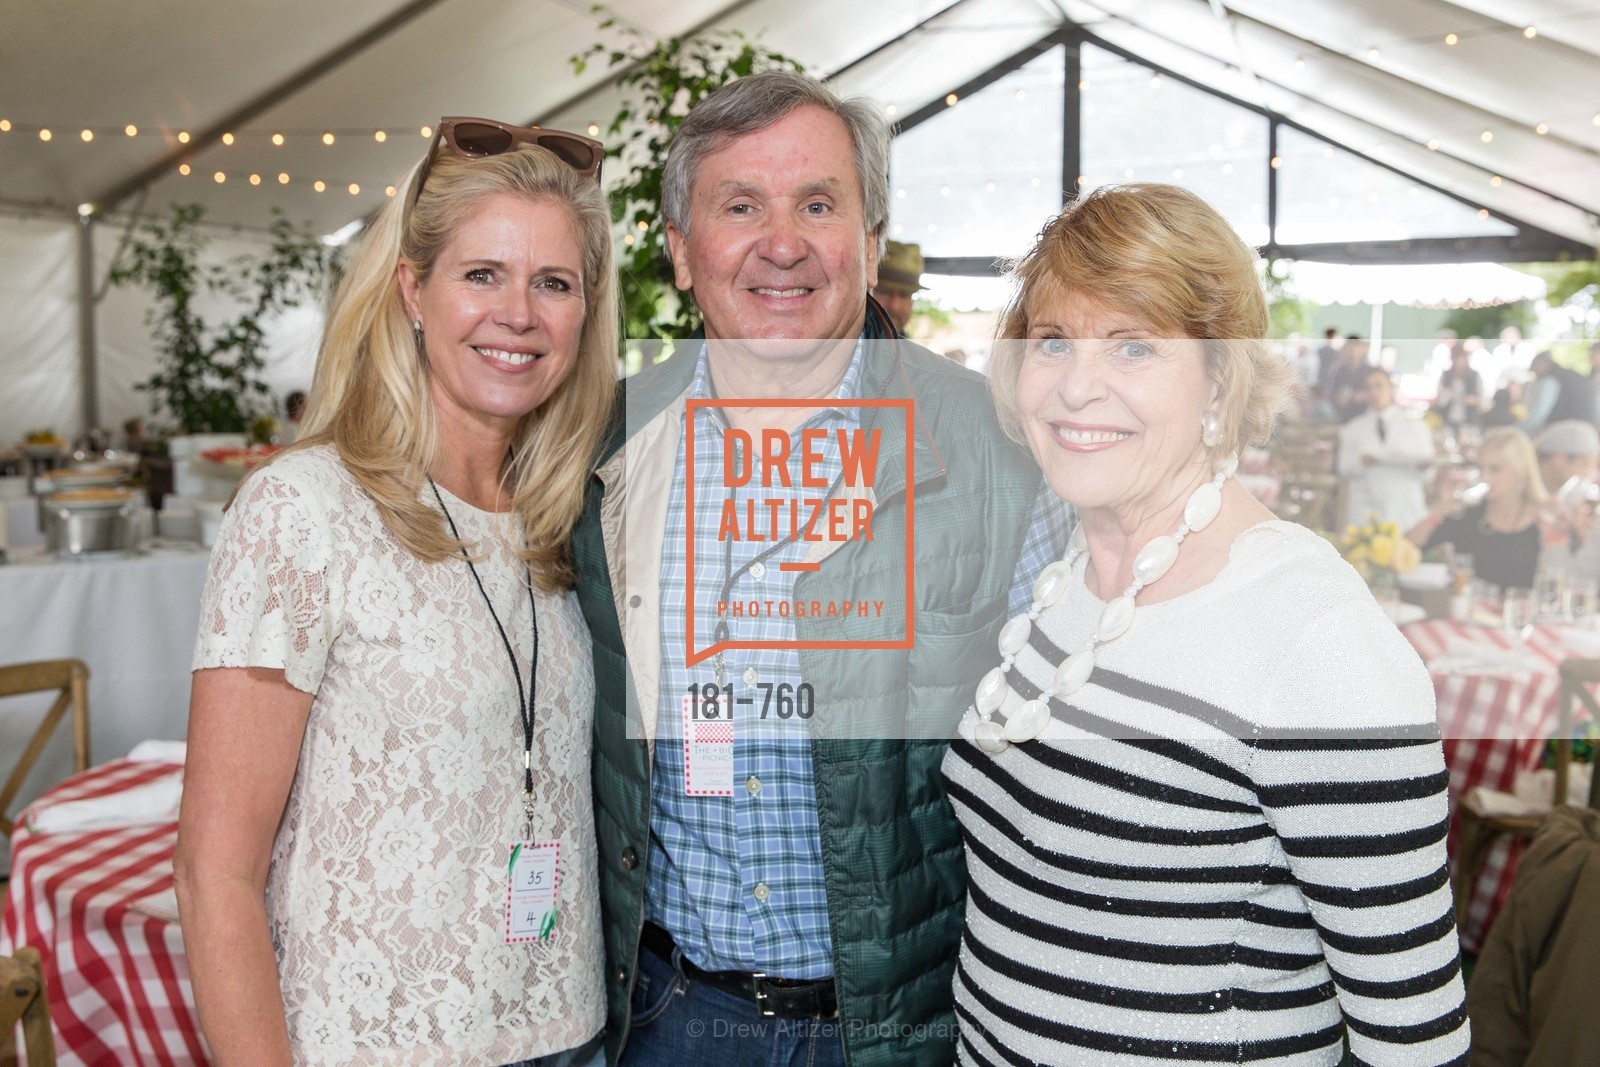 Shawn Byers, Brook Byers, Dagmar Dolby, The Big Picnic! A Benefit & Concert for STERN GROVE FESTIVAL, US, June 14th, 2015,Drew Altizer, Drew Altizer Photography, full-service agency, private events, San Francisco photographer, photographer california